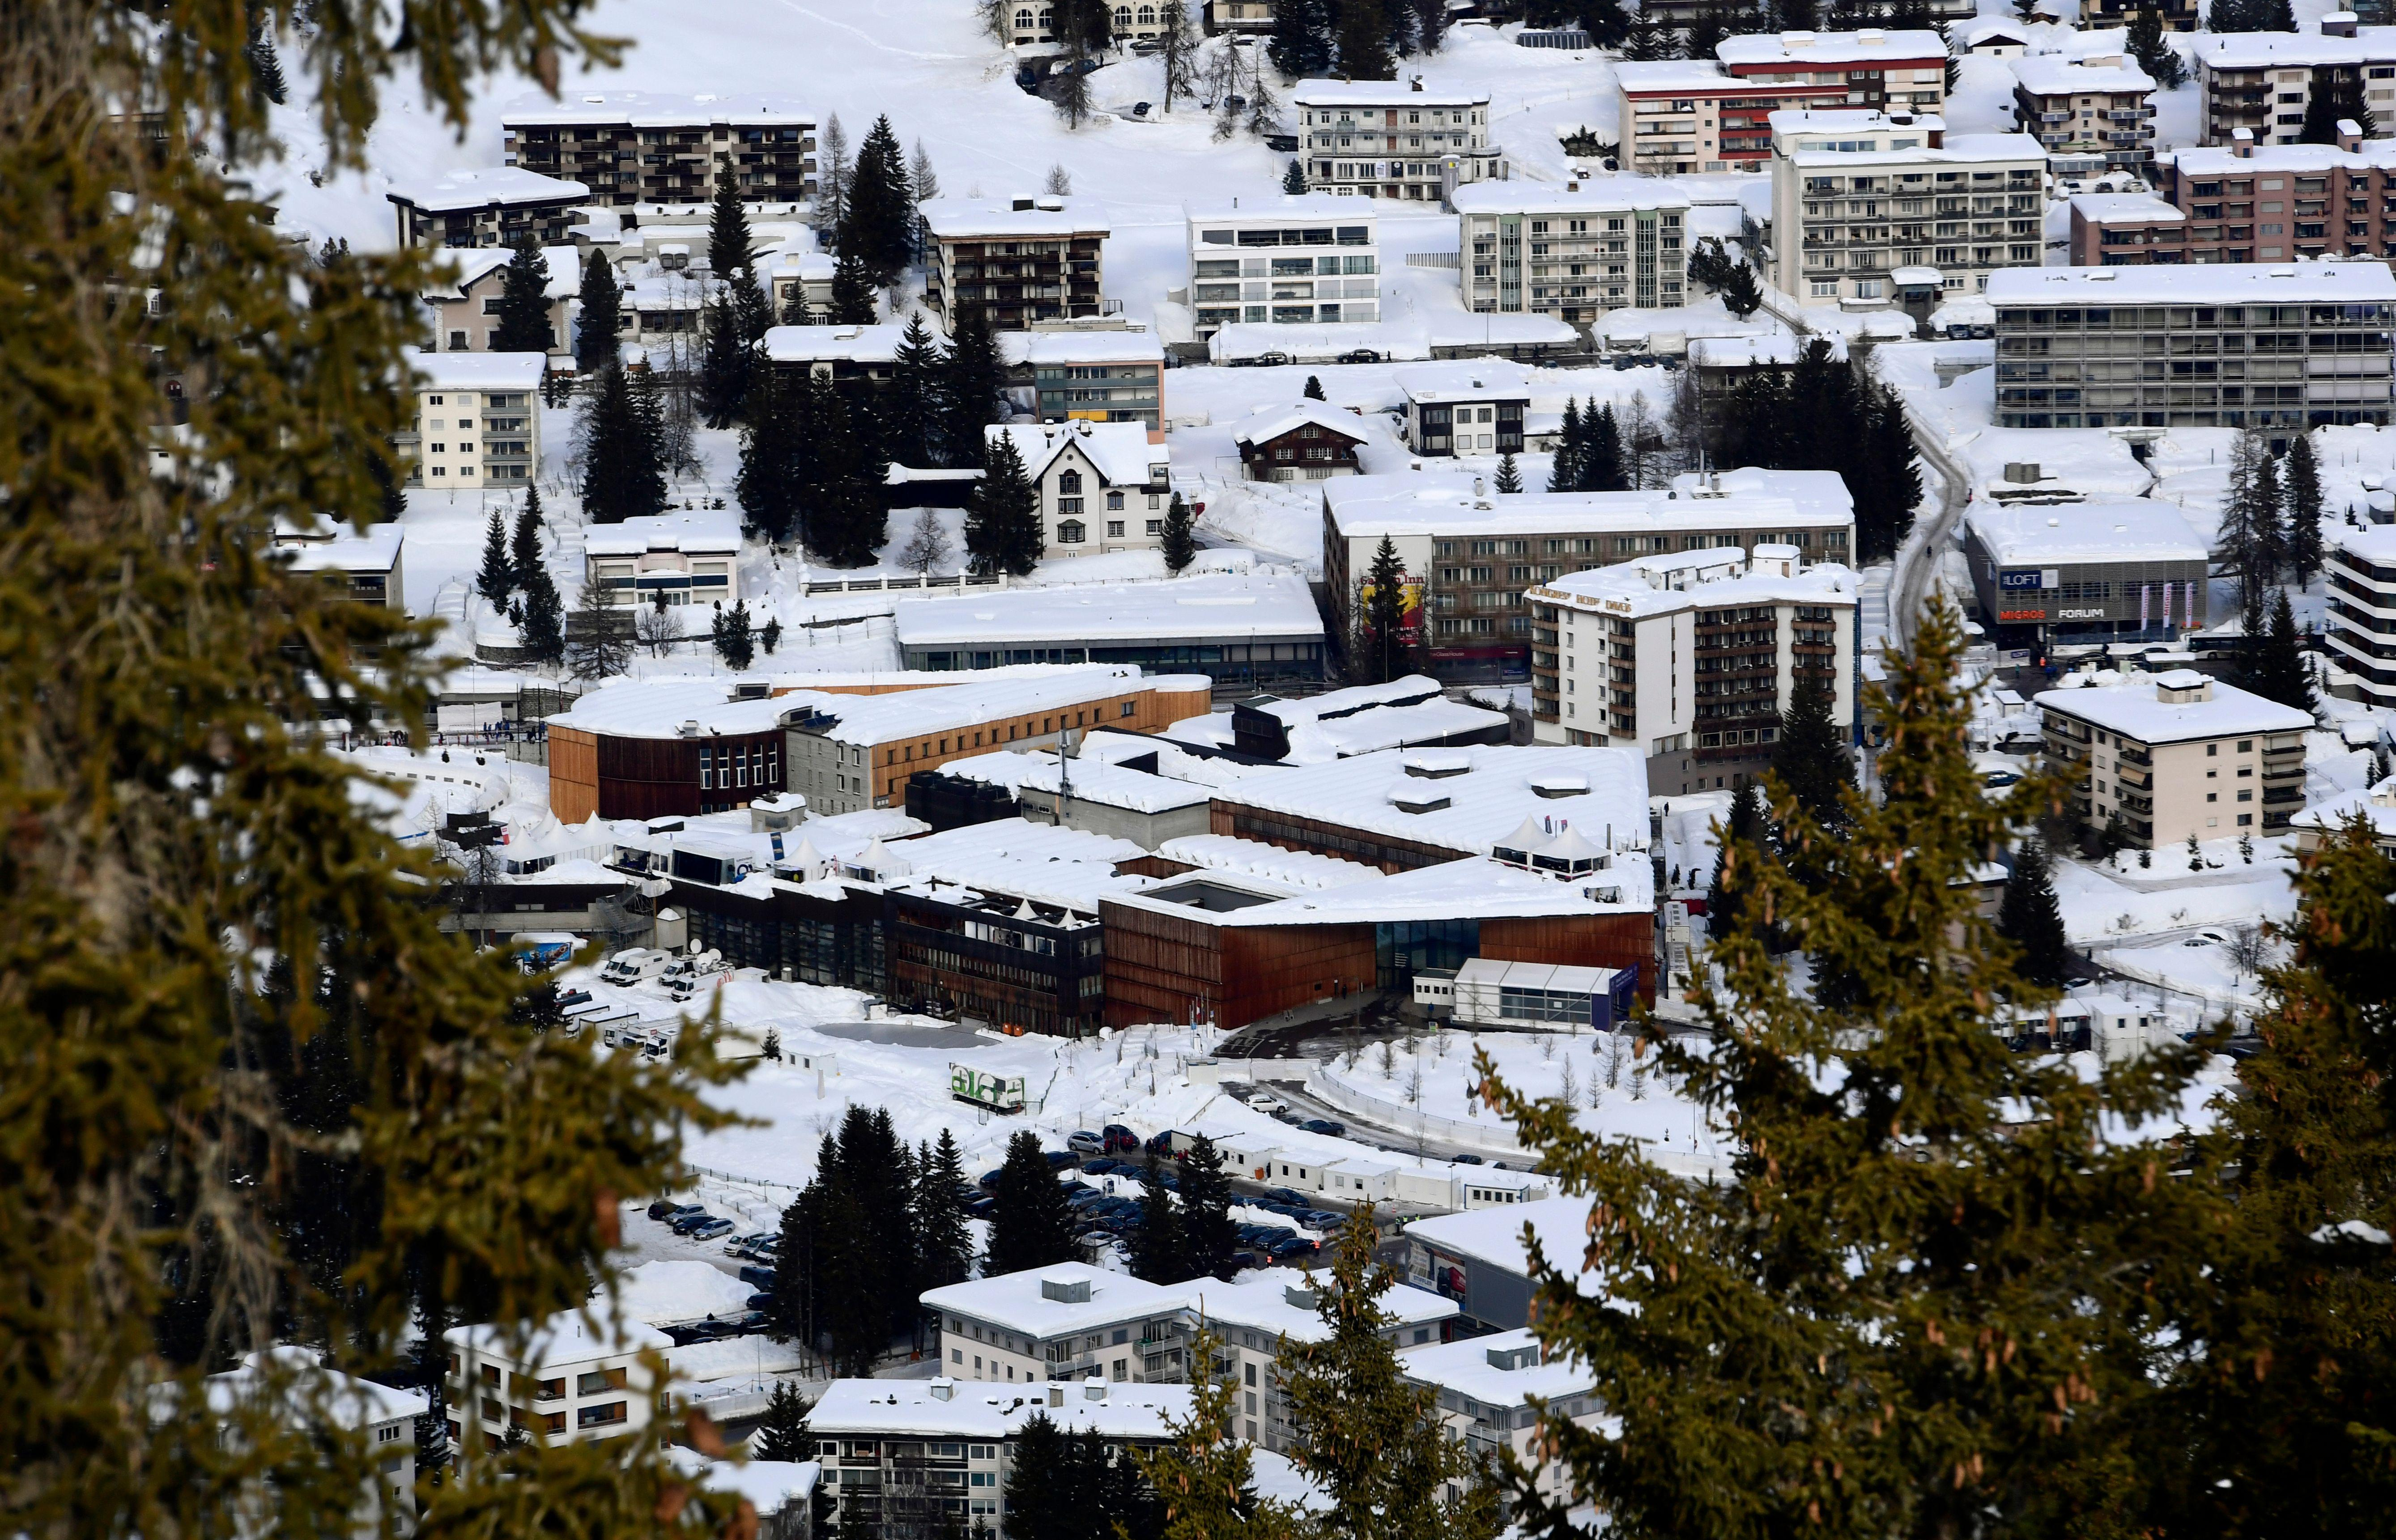 The buildings housing the World Economic Forum in Davos, Switzerland